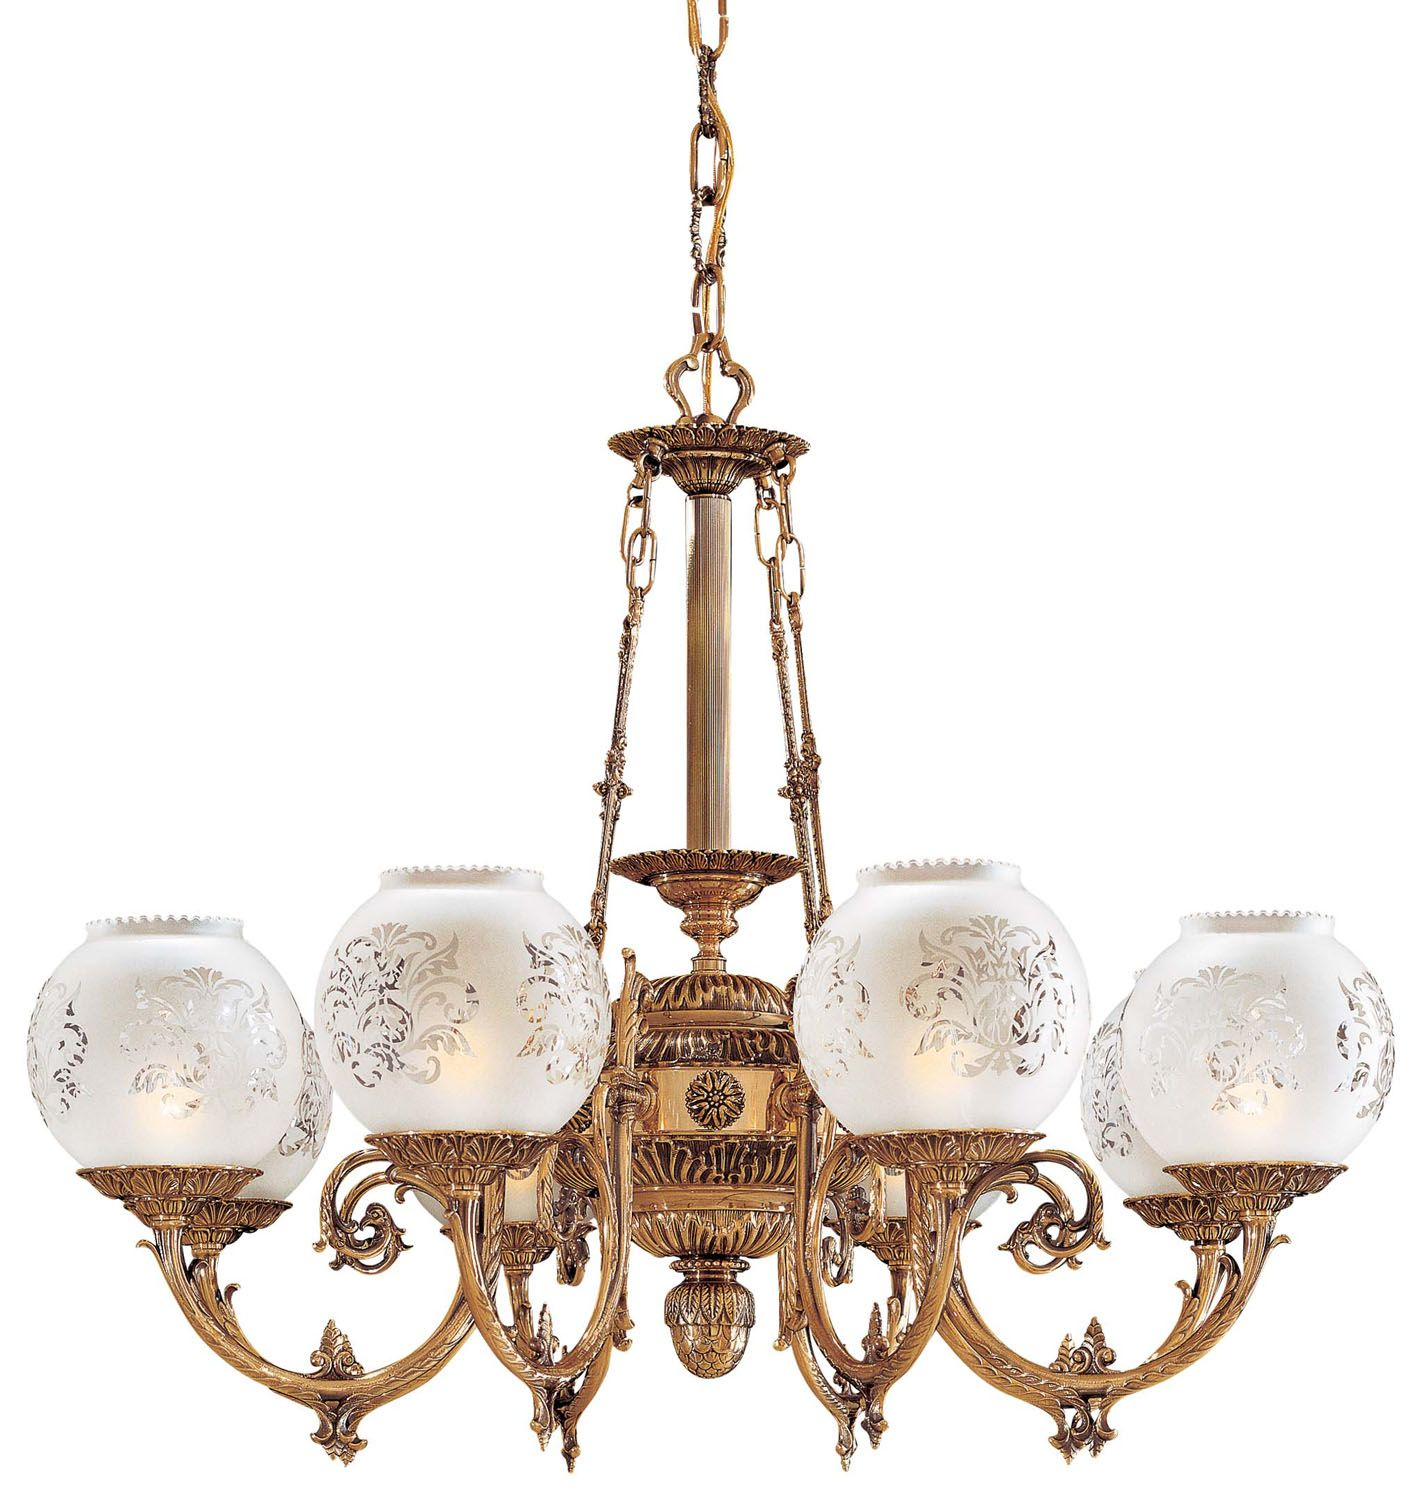 Eight light chandelier antique brass finish etched glass make a eight light chandelier antique brass finish etched glass make a statement victorian style mozeypictures Image collections